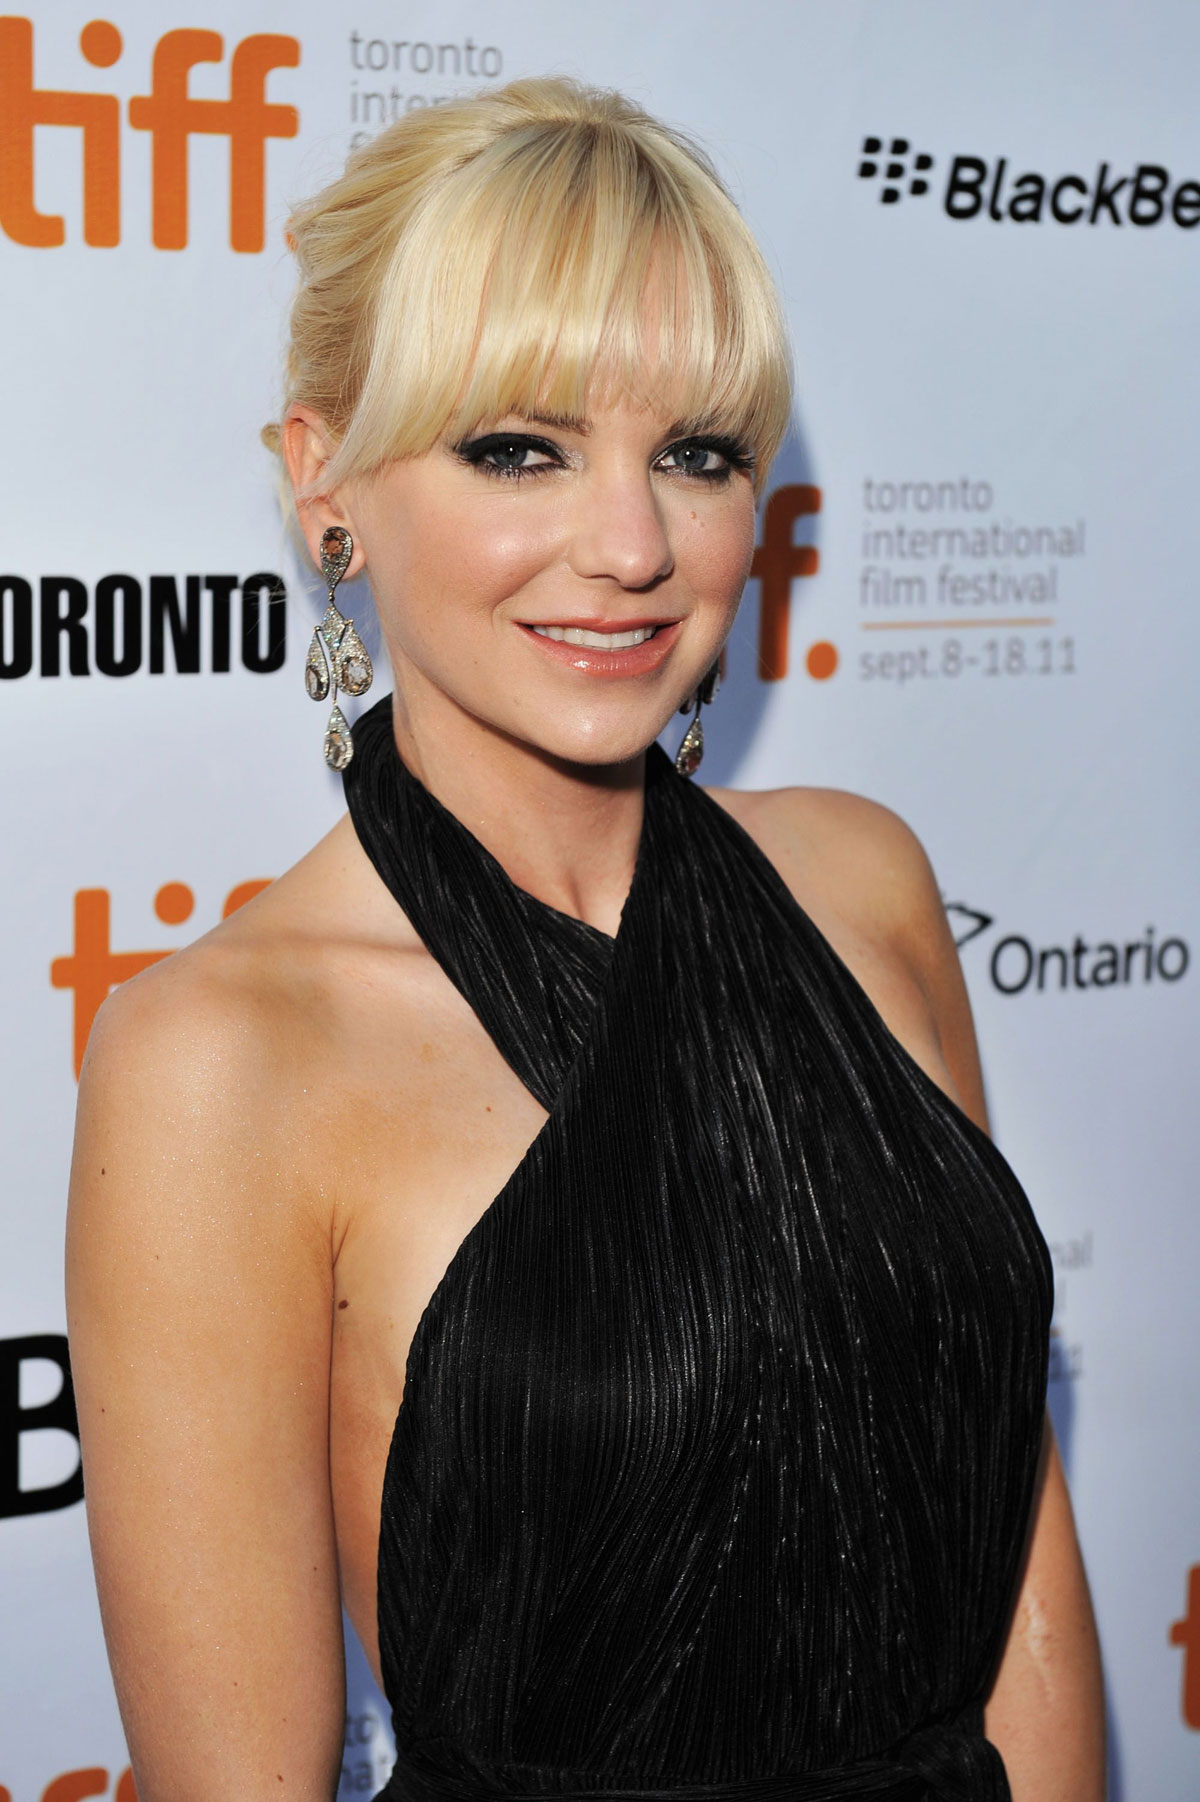 Anna Faris For mobile